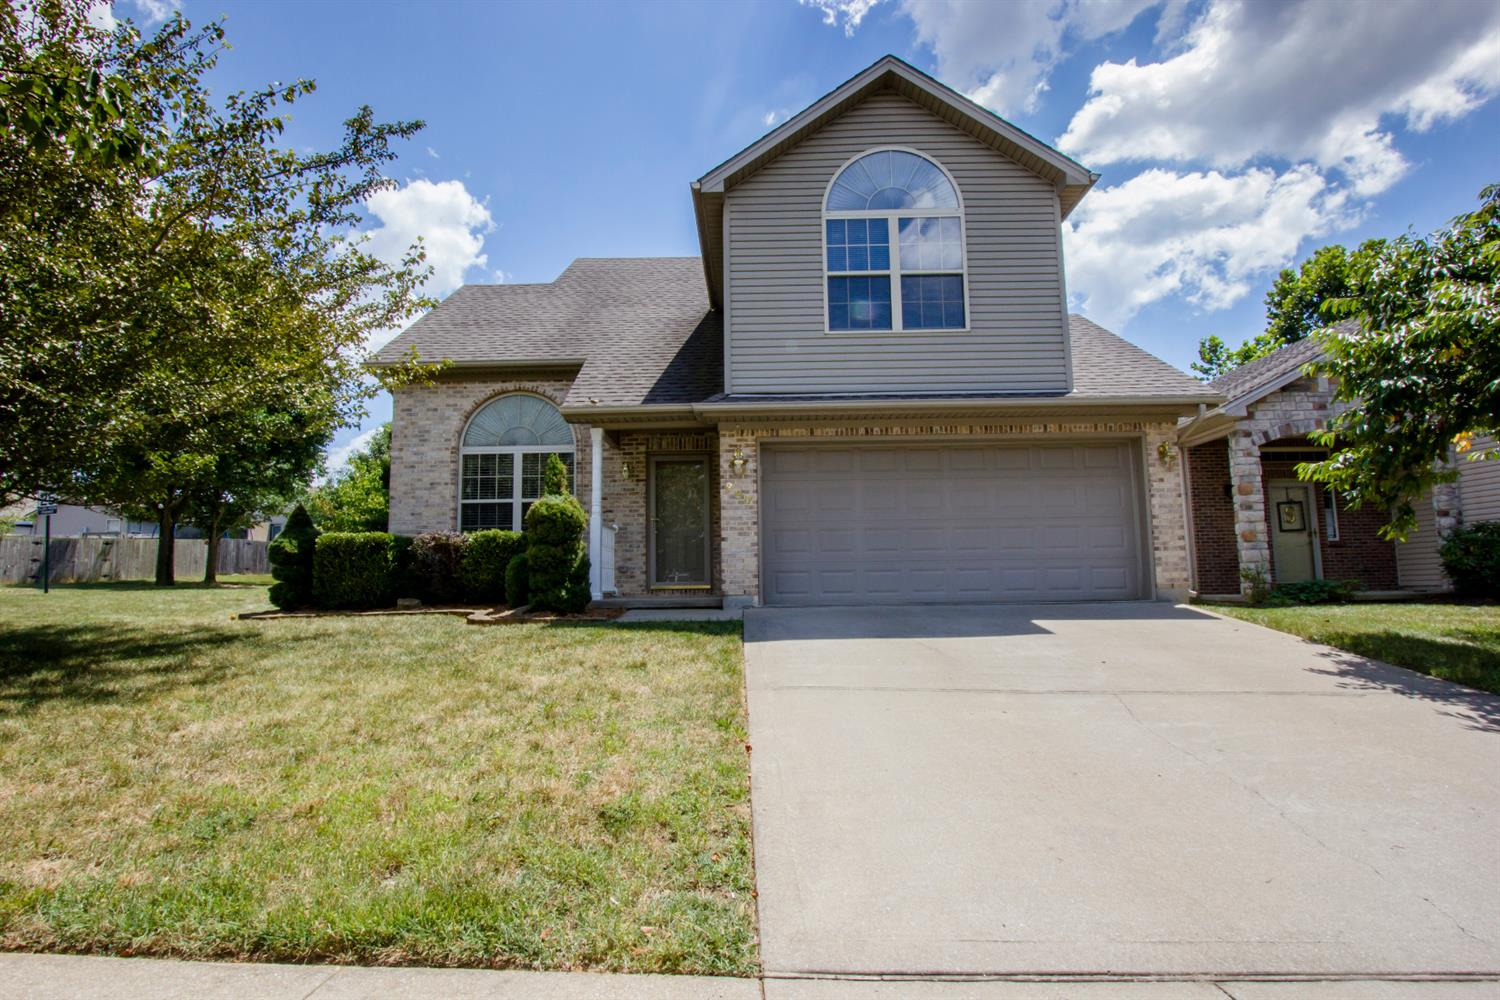 200 White Oak Trace, Lexington, KY 40511